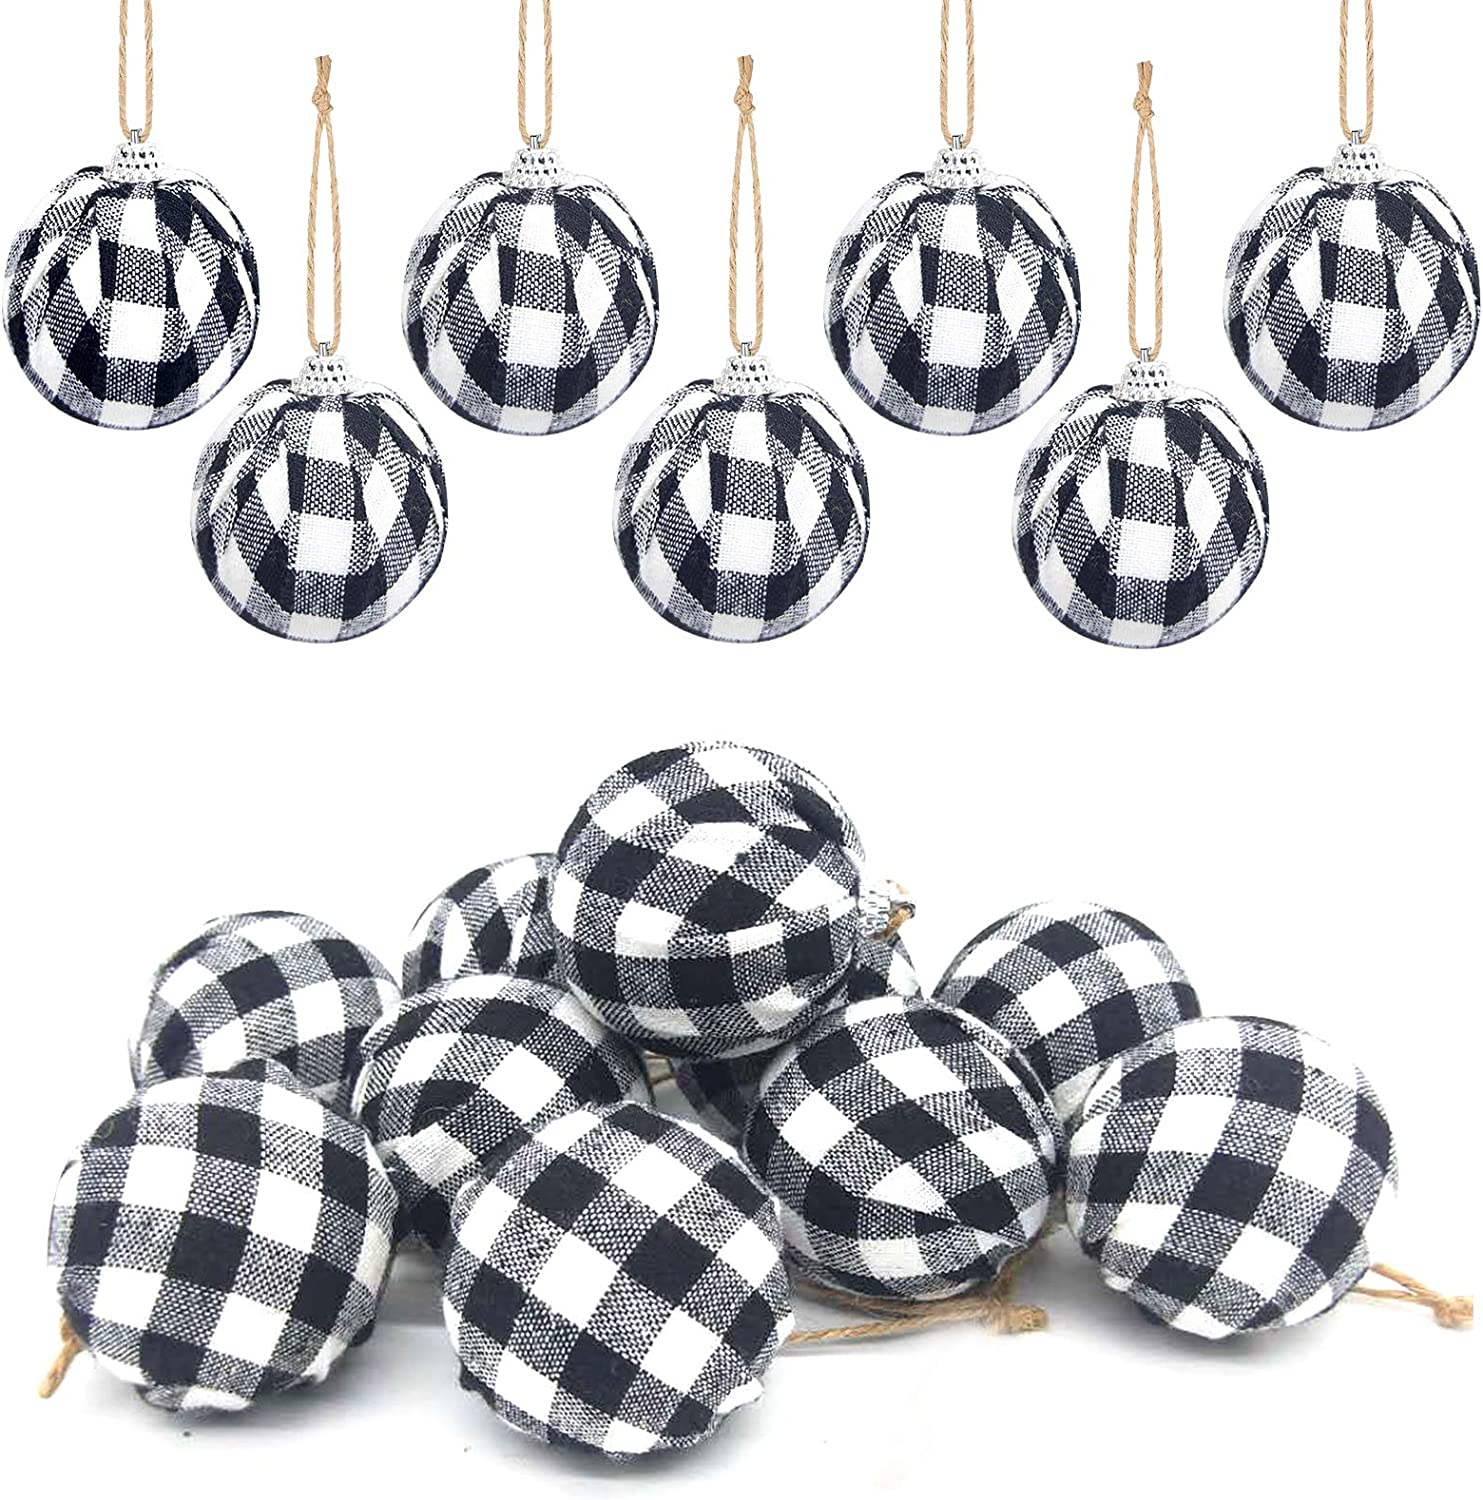 Deloky 16Pcs Buffalo Plaid Fabric Ball- 2.16 Inch Small Christmas Fabric Wrapped Balls Christmas Hanging Ornament for Halloween Party Decor Christmas Tree Party Decoration Supplies (Black&White)